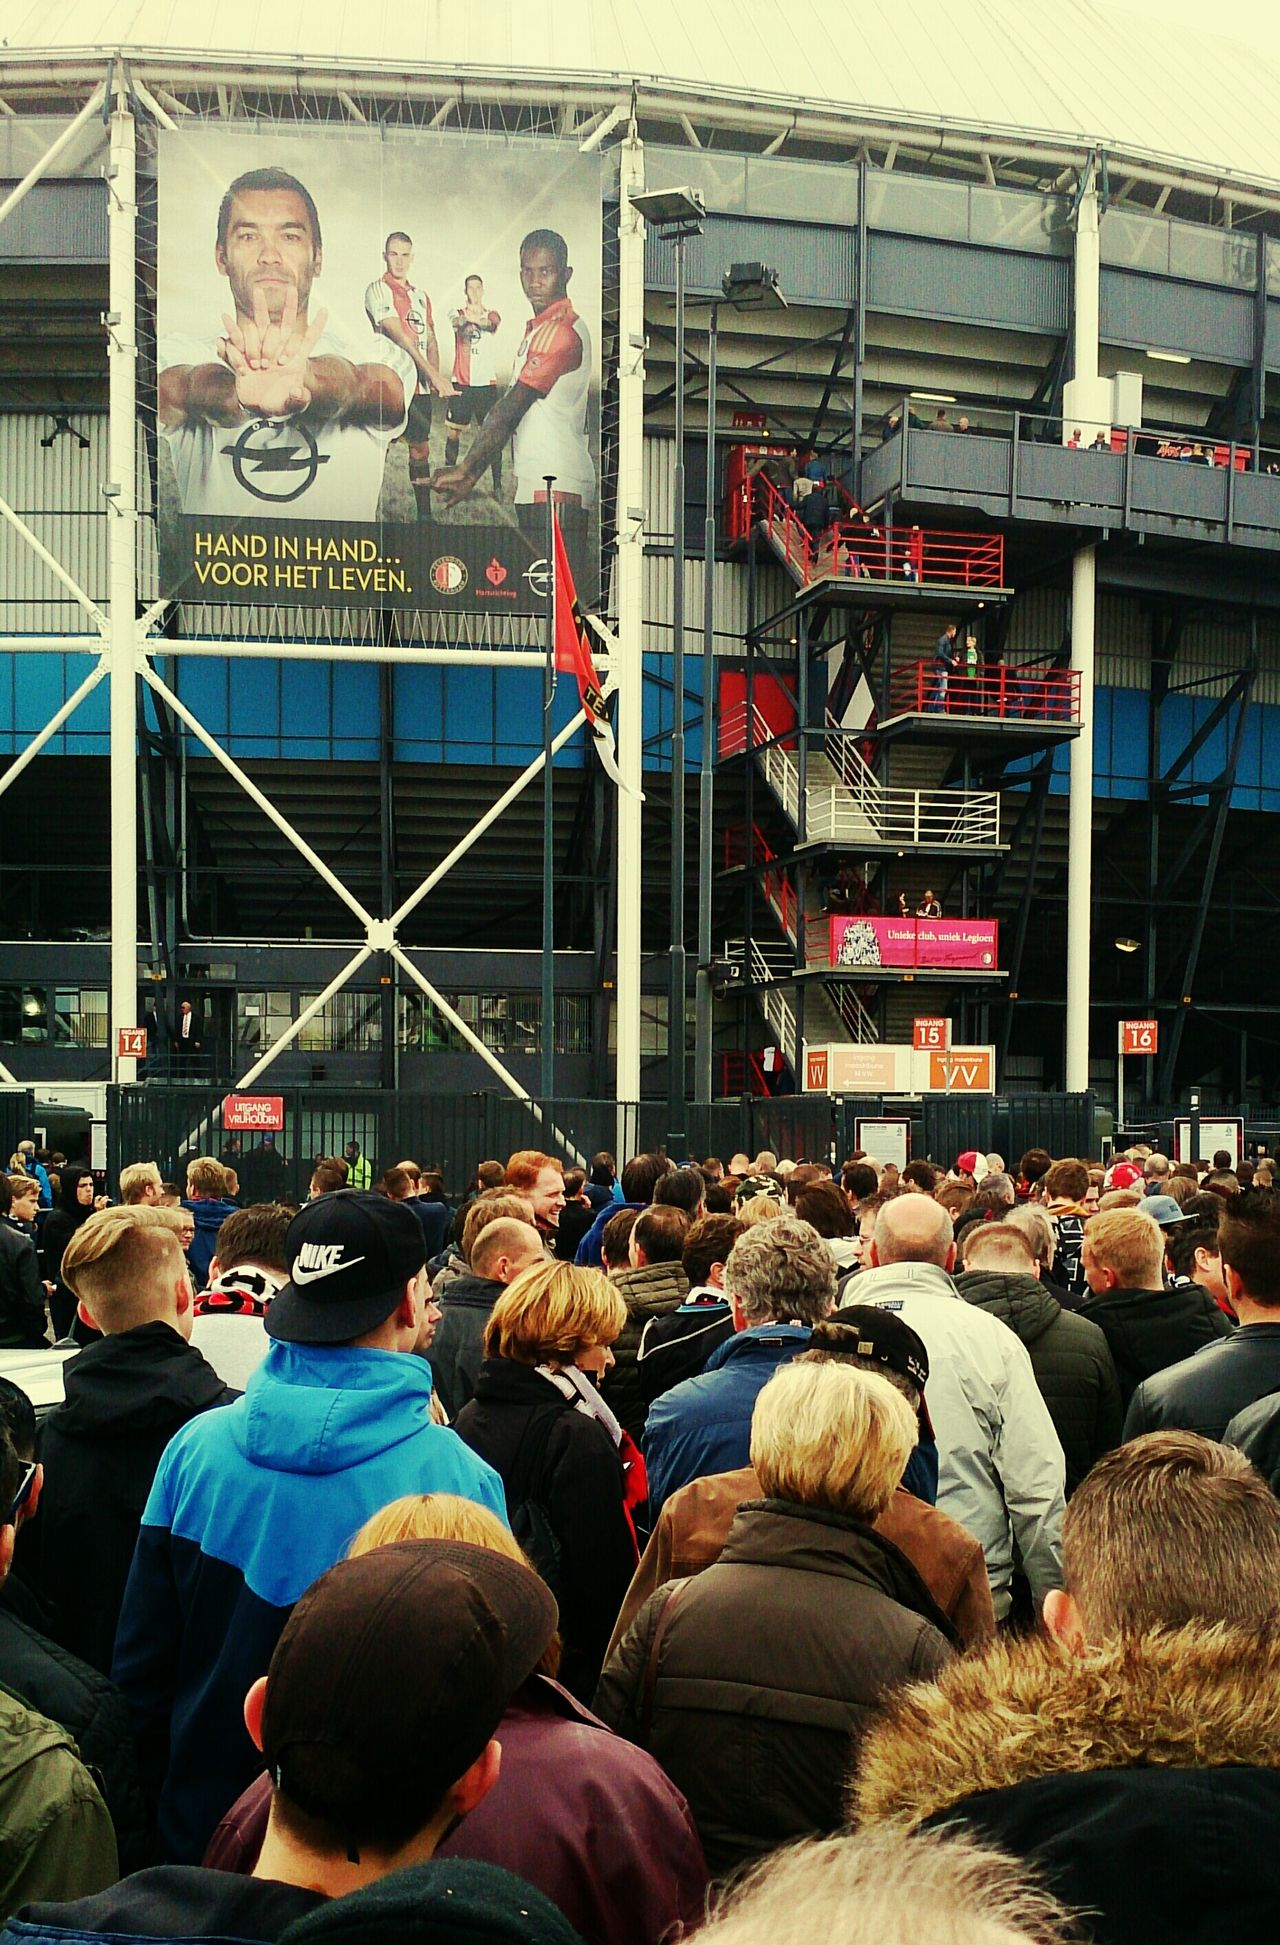 Waiting In Line to enter the Feyenoord Stadium De Kuip for The Match Of The Season against Ajax (c) 2015 Shangita Bose All Rights Reserved Rotterdam Netherlands The Street Photographer - 2016 EyeEm Awards The Photojournalist - 2016 EyeEm Awards Football Fever